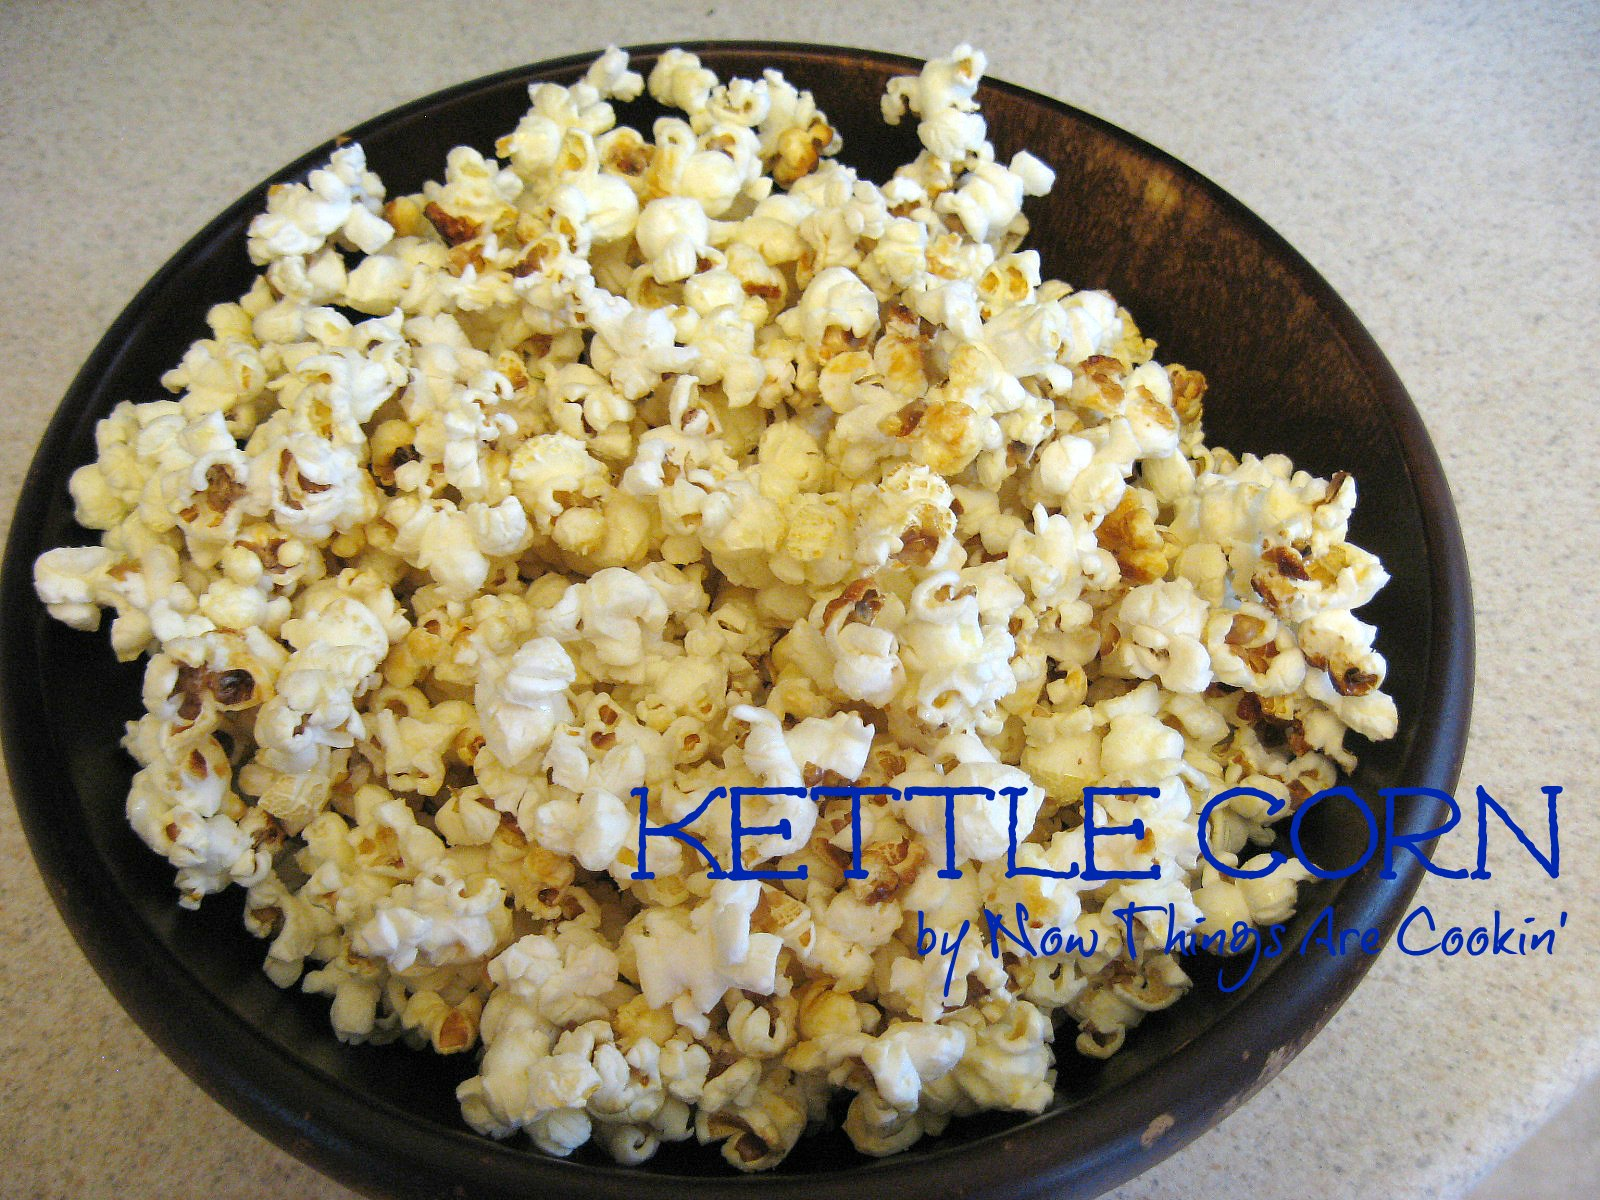 how to sell kettle corn